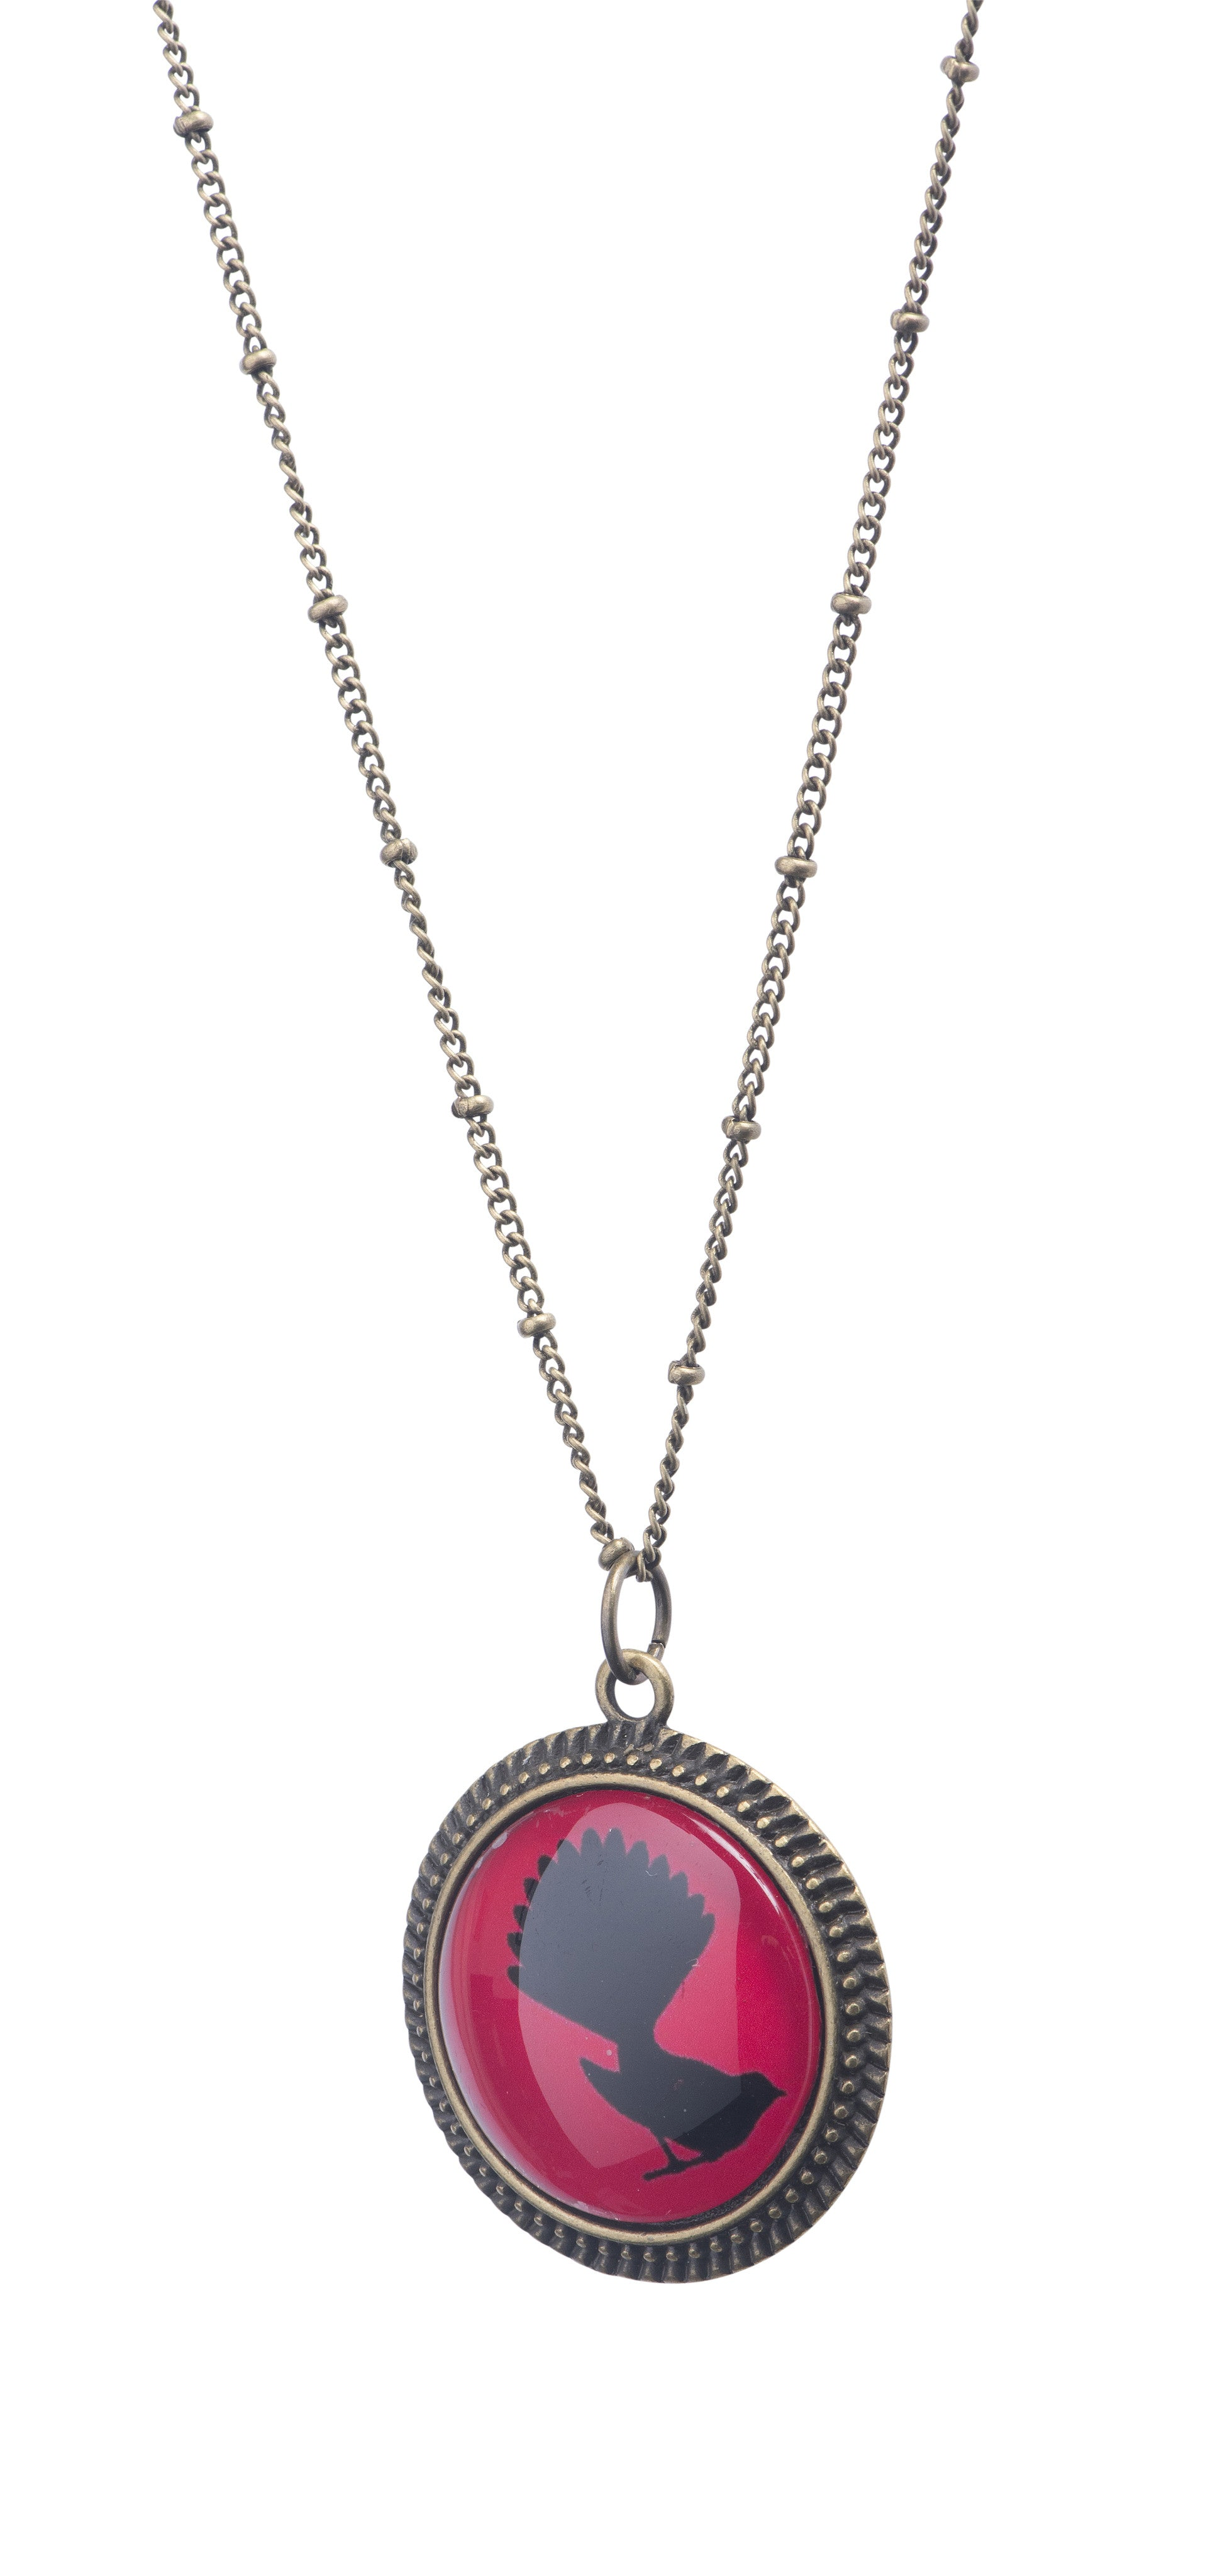 pendant necklace vaults crystal red jasper